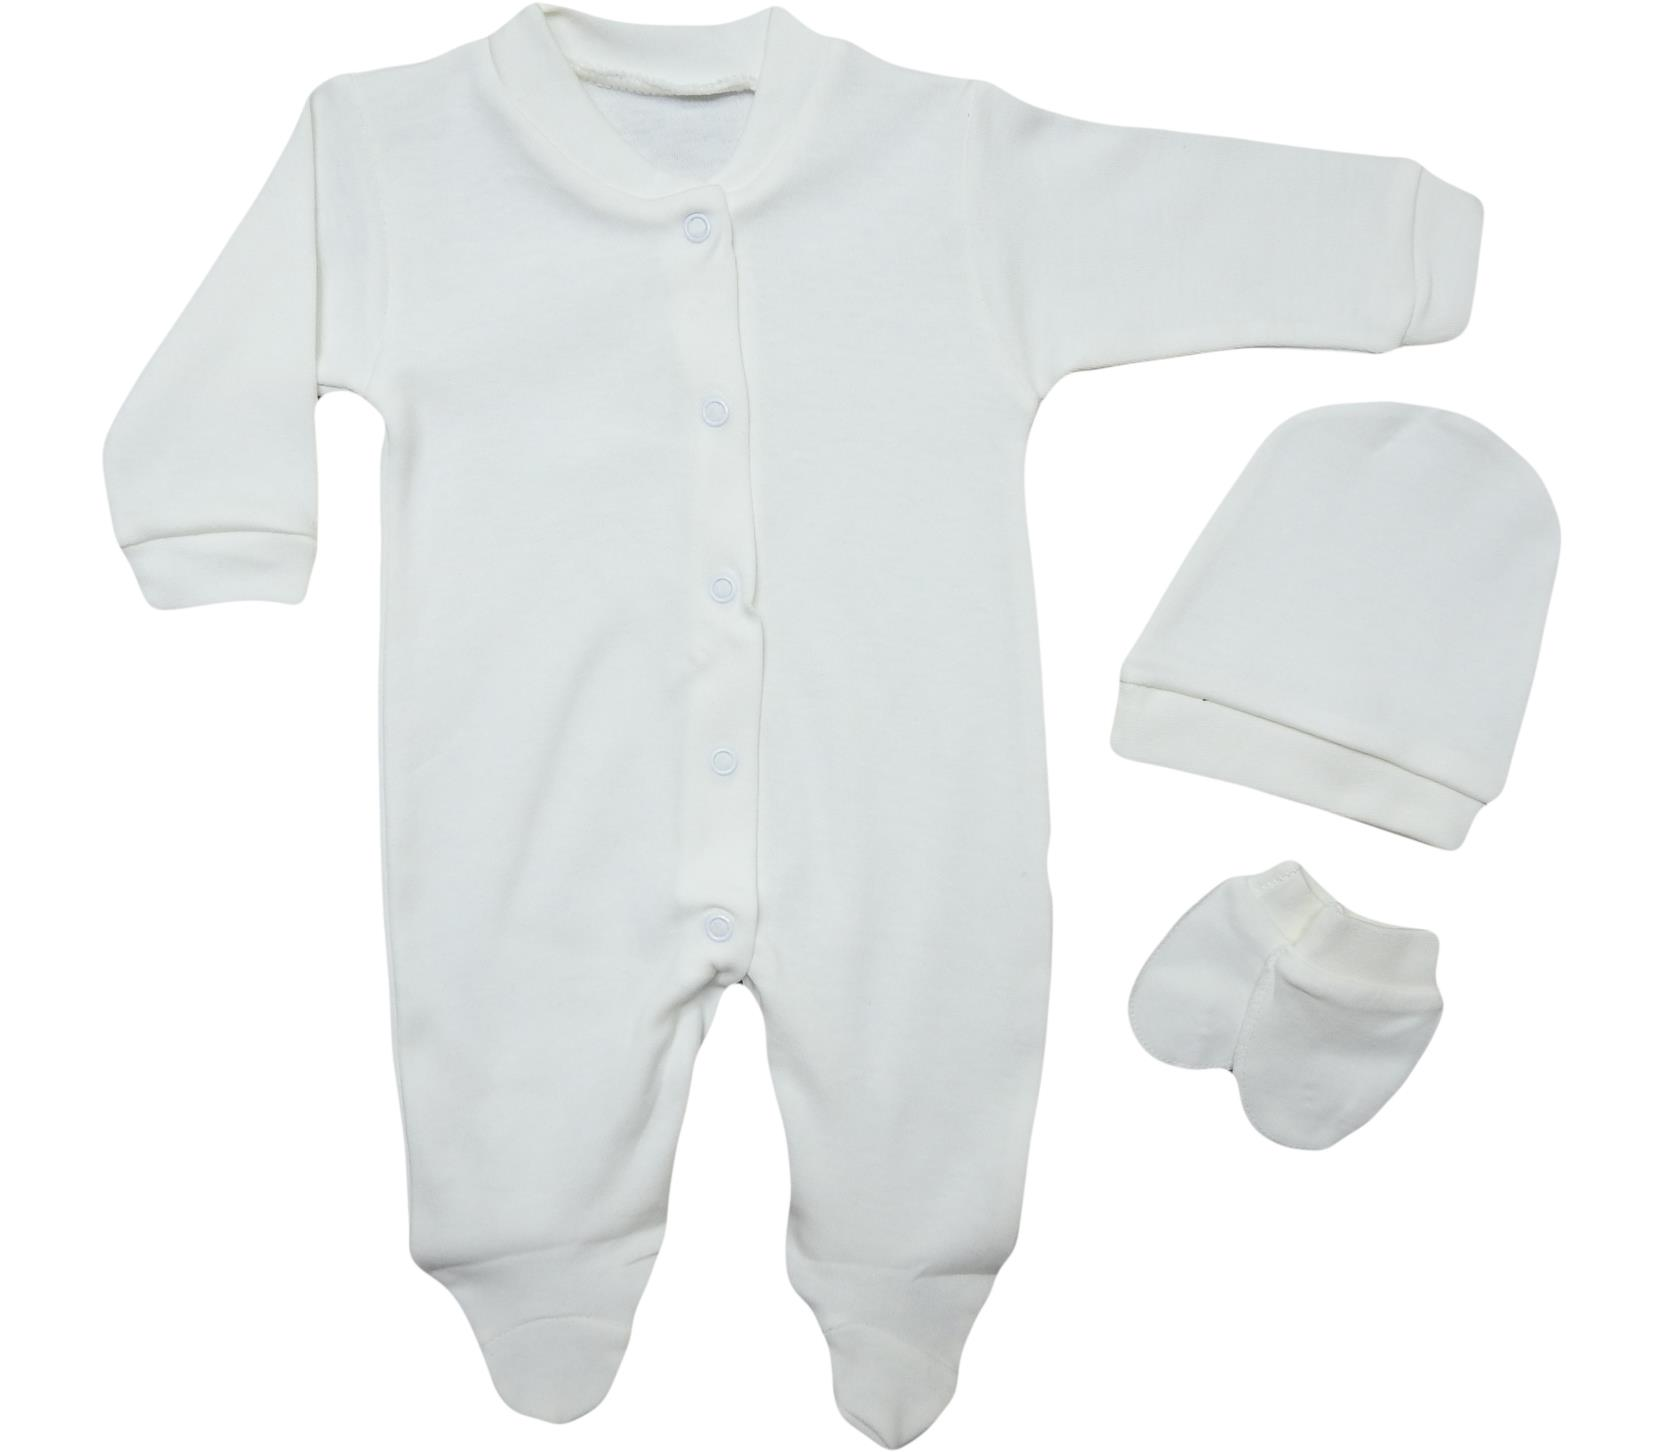 0025 wholesale baby knit rompers with hat and mittens for newborns